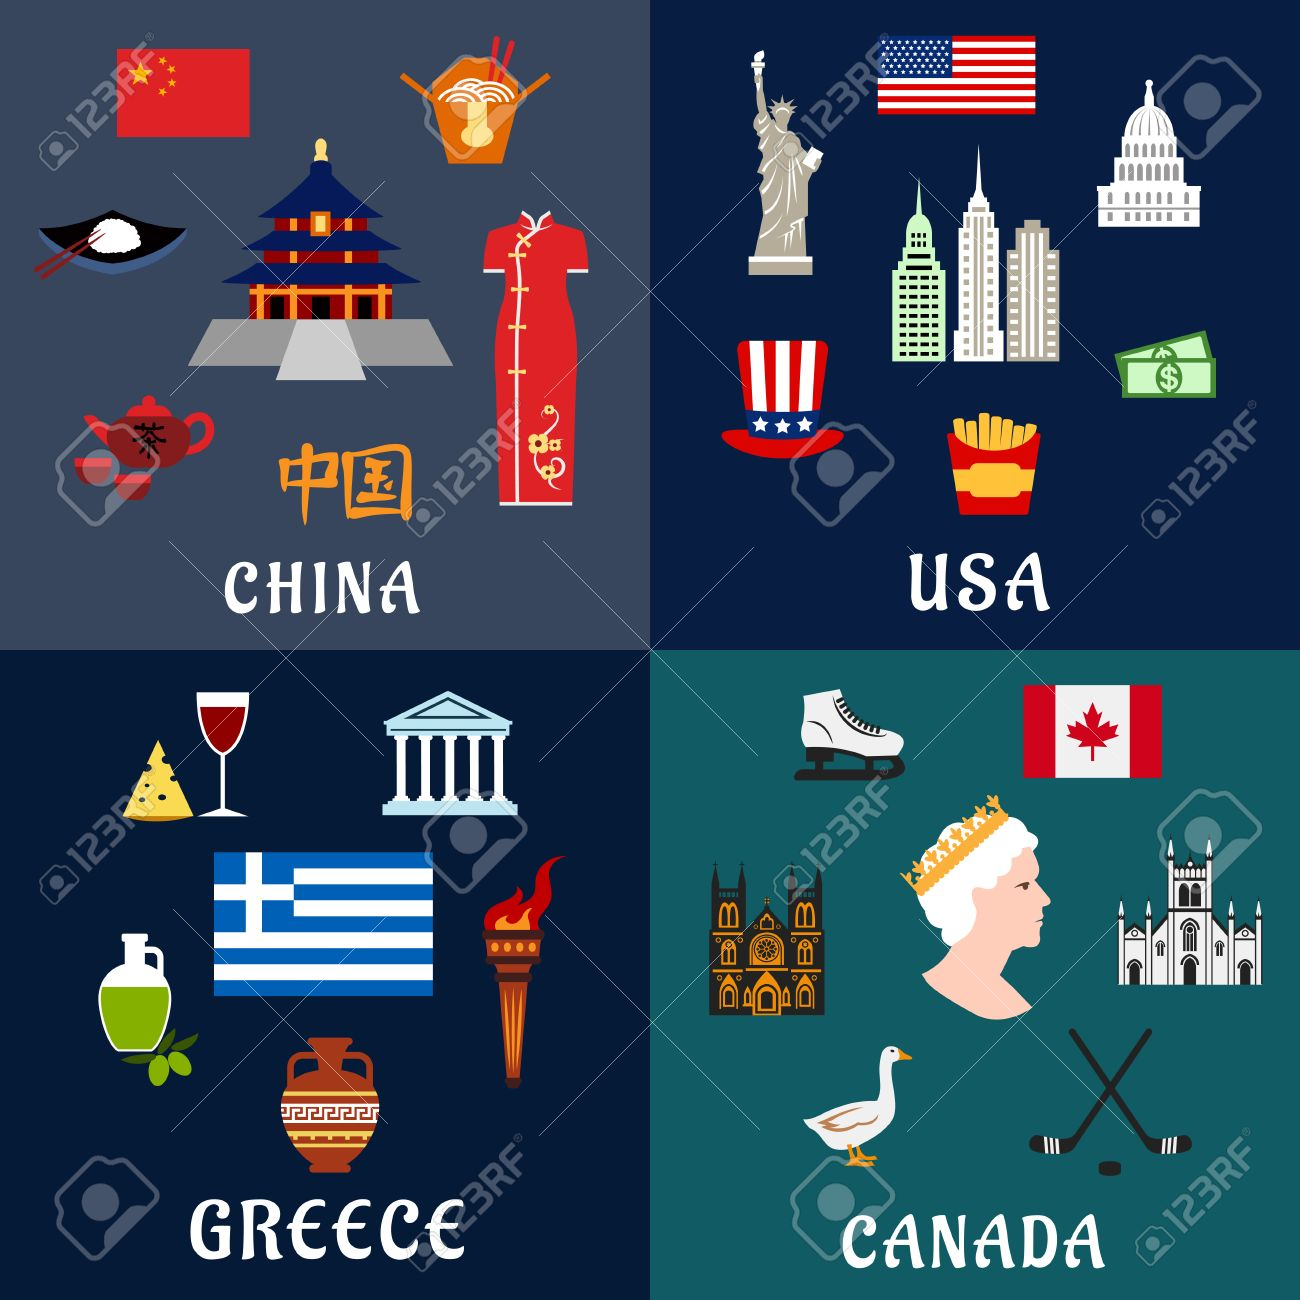 USA, China, Greece And Canada Travel And Landmarks Flat Icons With ...